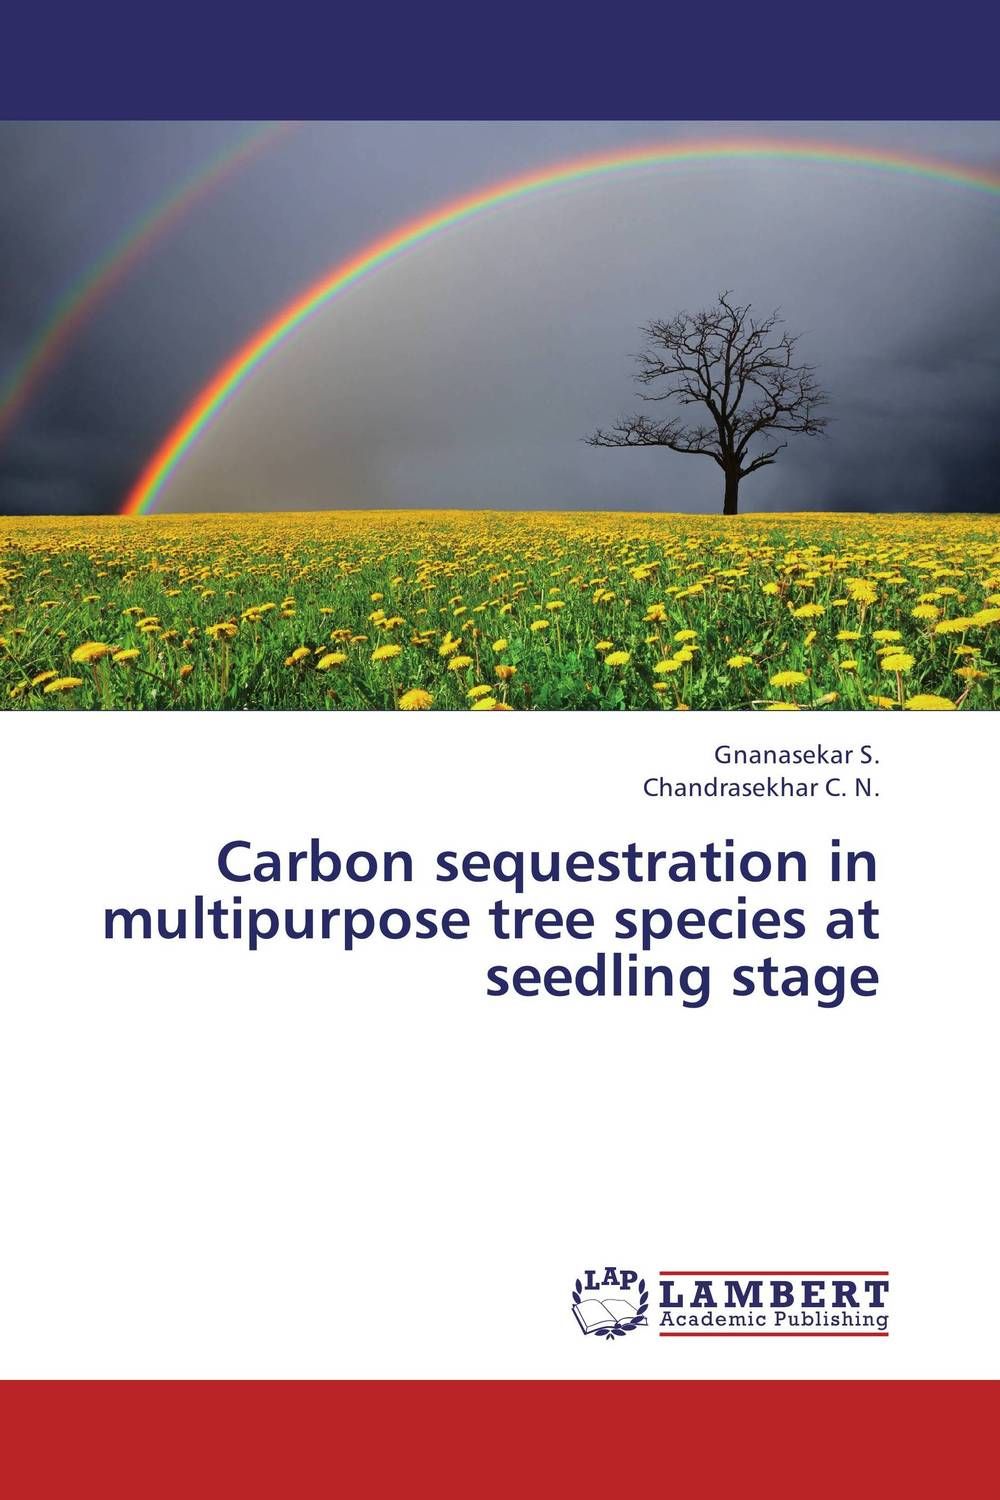 Carbon sequestration in multipurpose tree species at seedling stage gnanasekar s and chandrasekhar c n carbon sequestration in multipurpose tree species at seedling stage